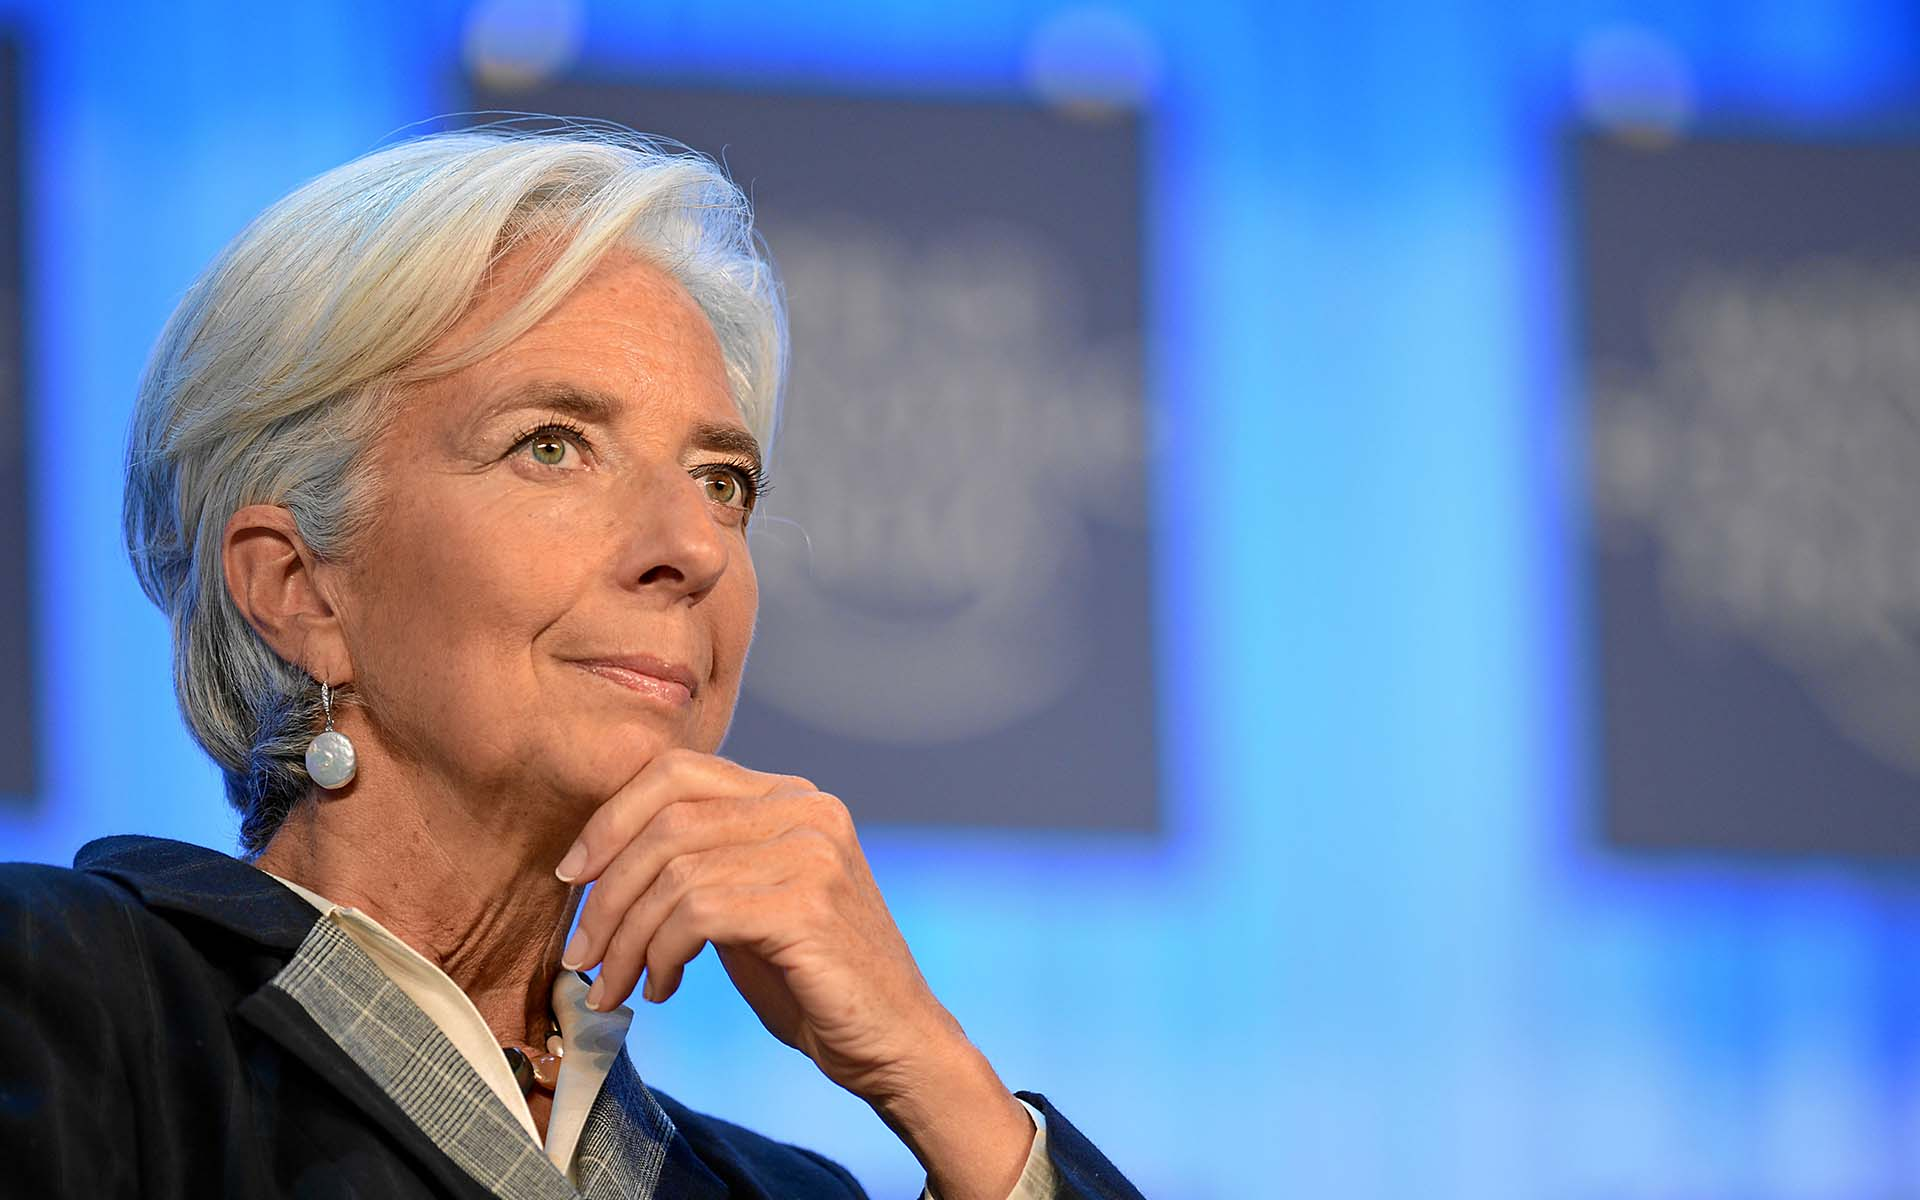 IMF's Christine Lagarde Sees Cryptocurrencies Potential For 'Dollarization 2.0'